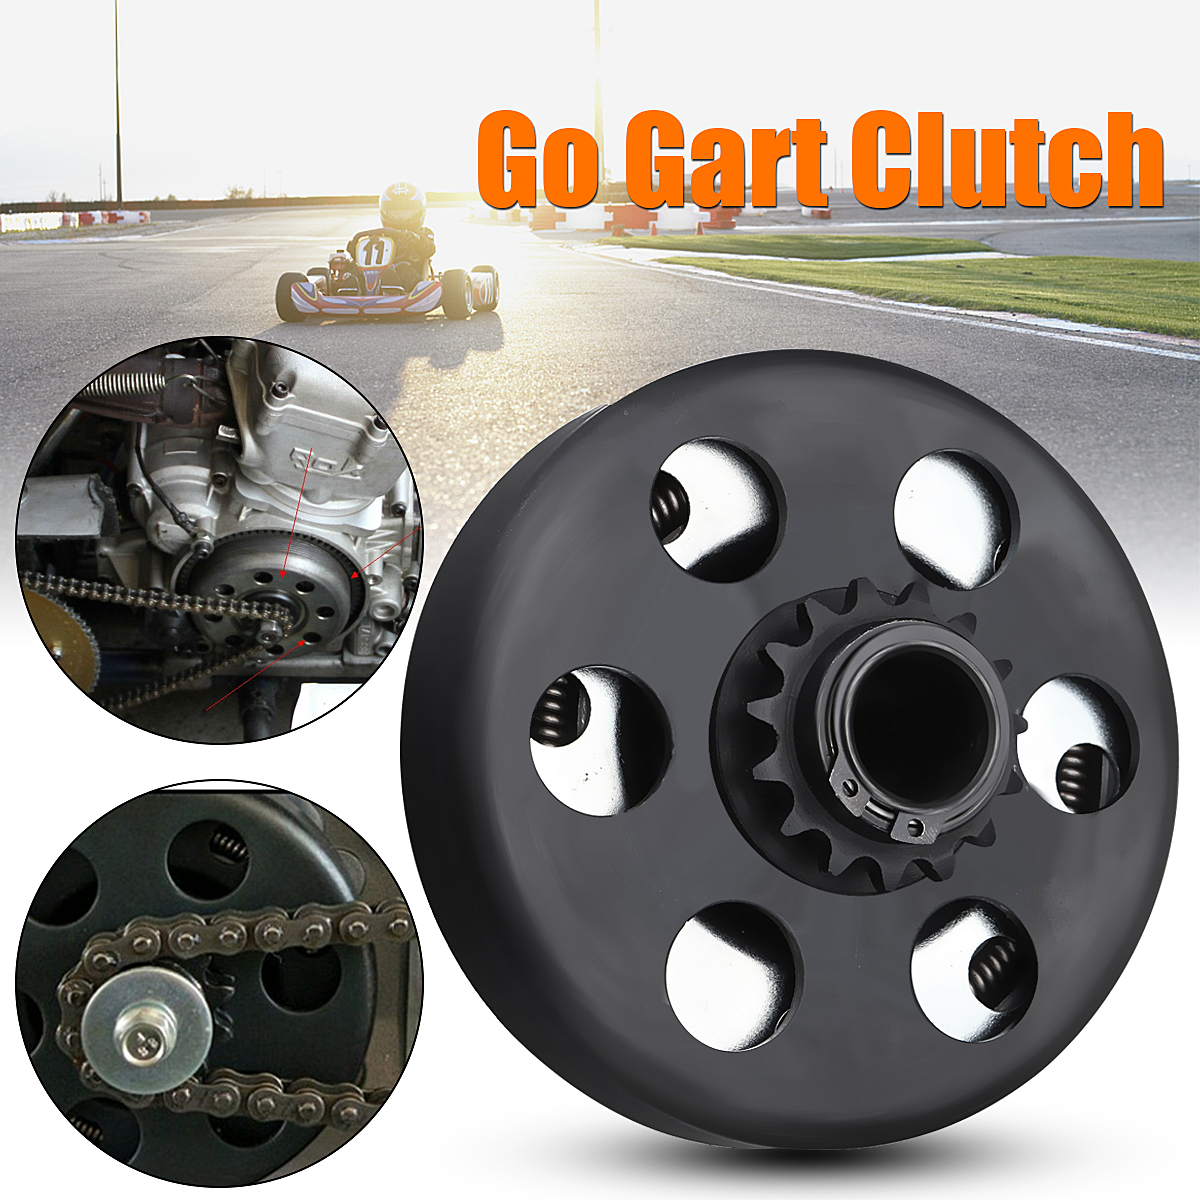 US $27 44 23% OFF|Iron+steel Centrifugal Clutch Sprocket 19mm 15t For Honda  Prokart 219 Chain Funkart Gokart-in Go Kart Parts & Accessories from